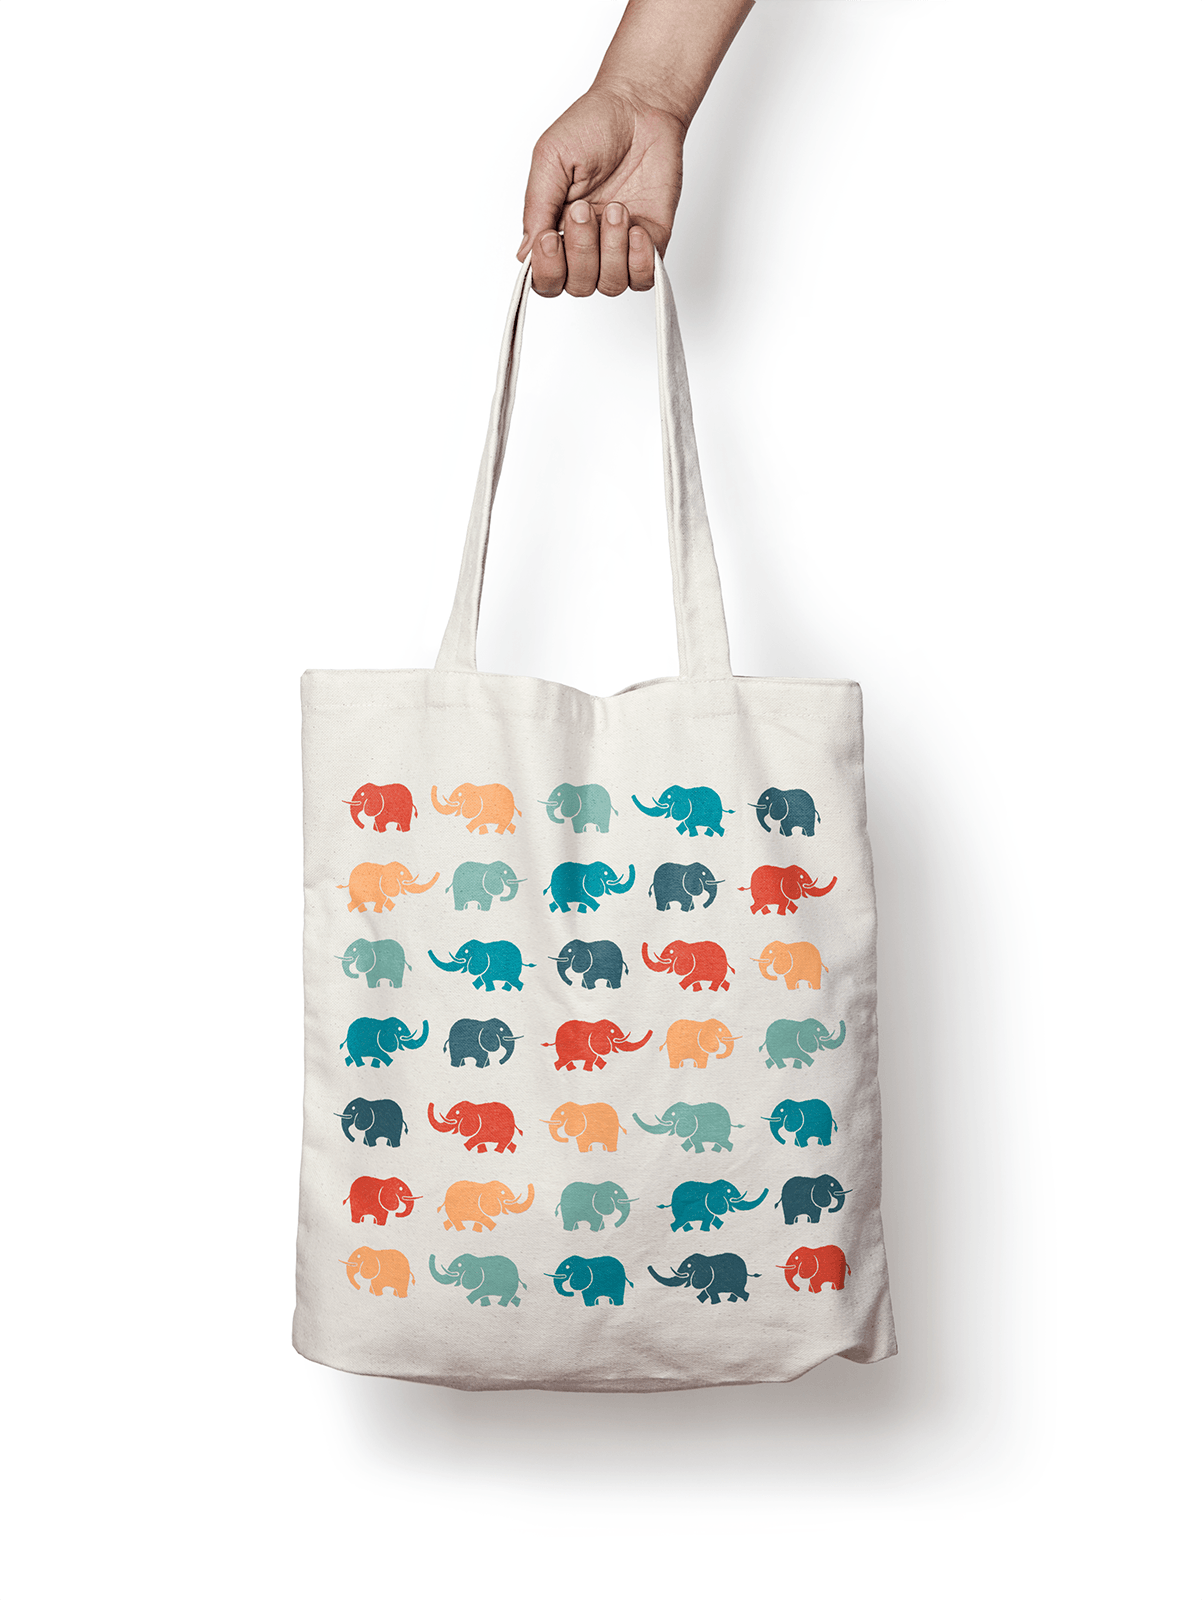 Pattern in use on a tote bag